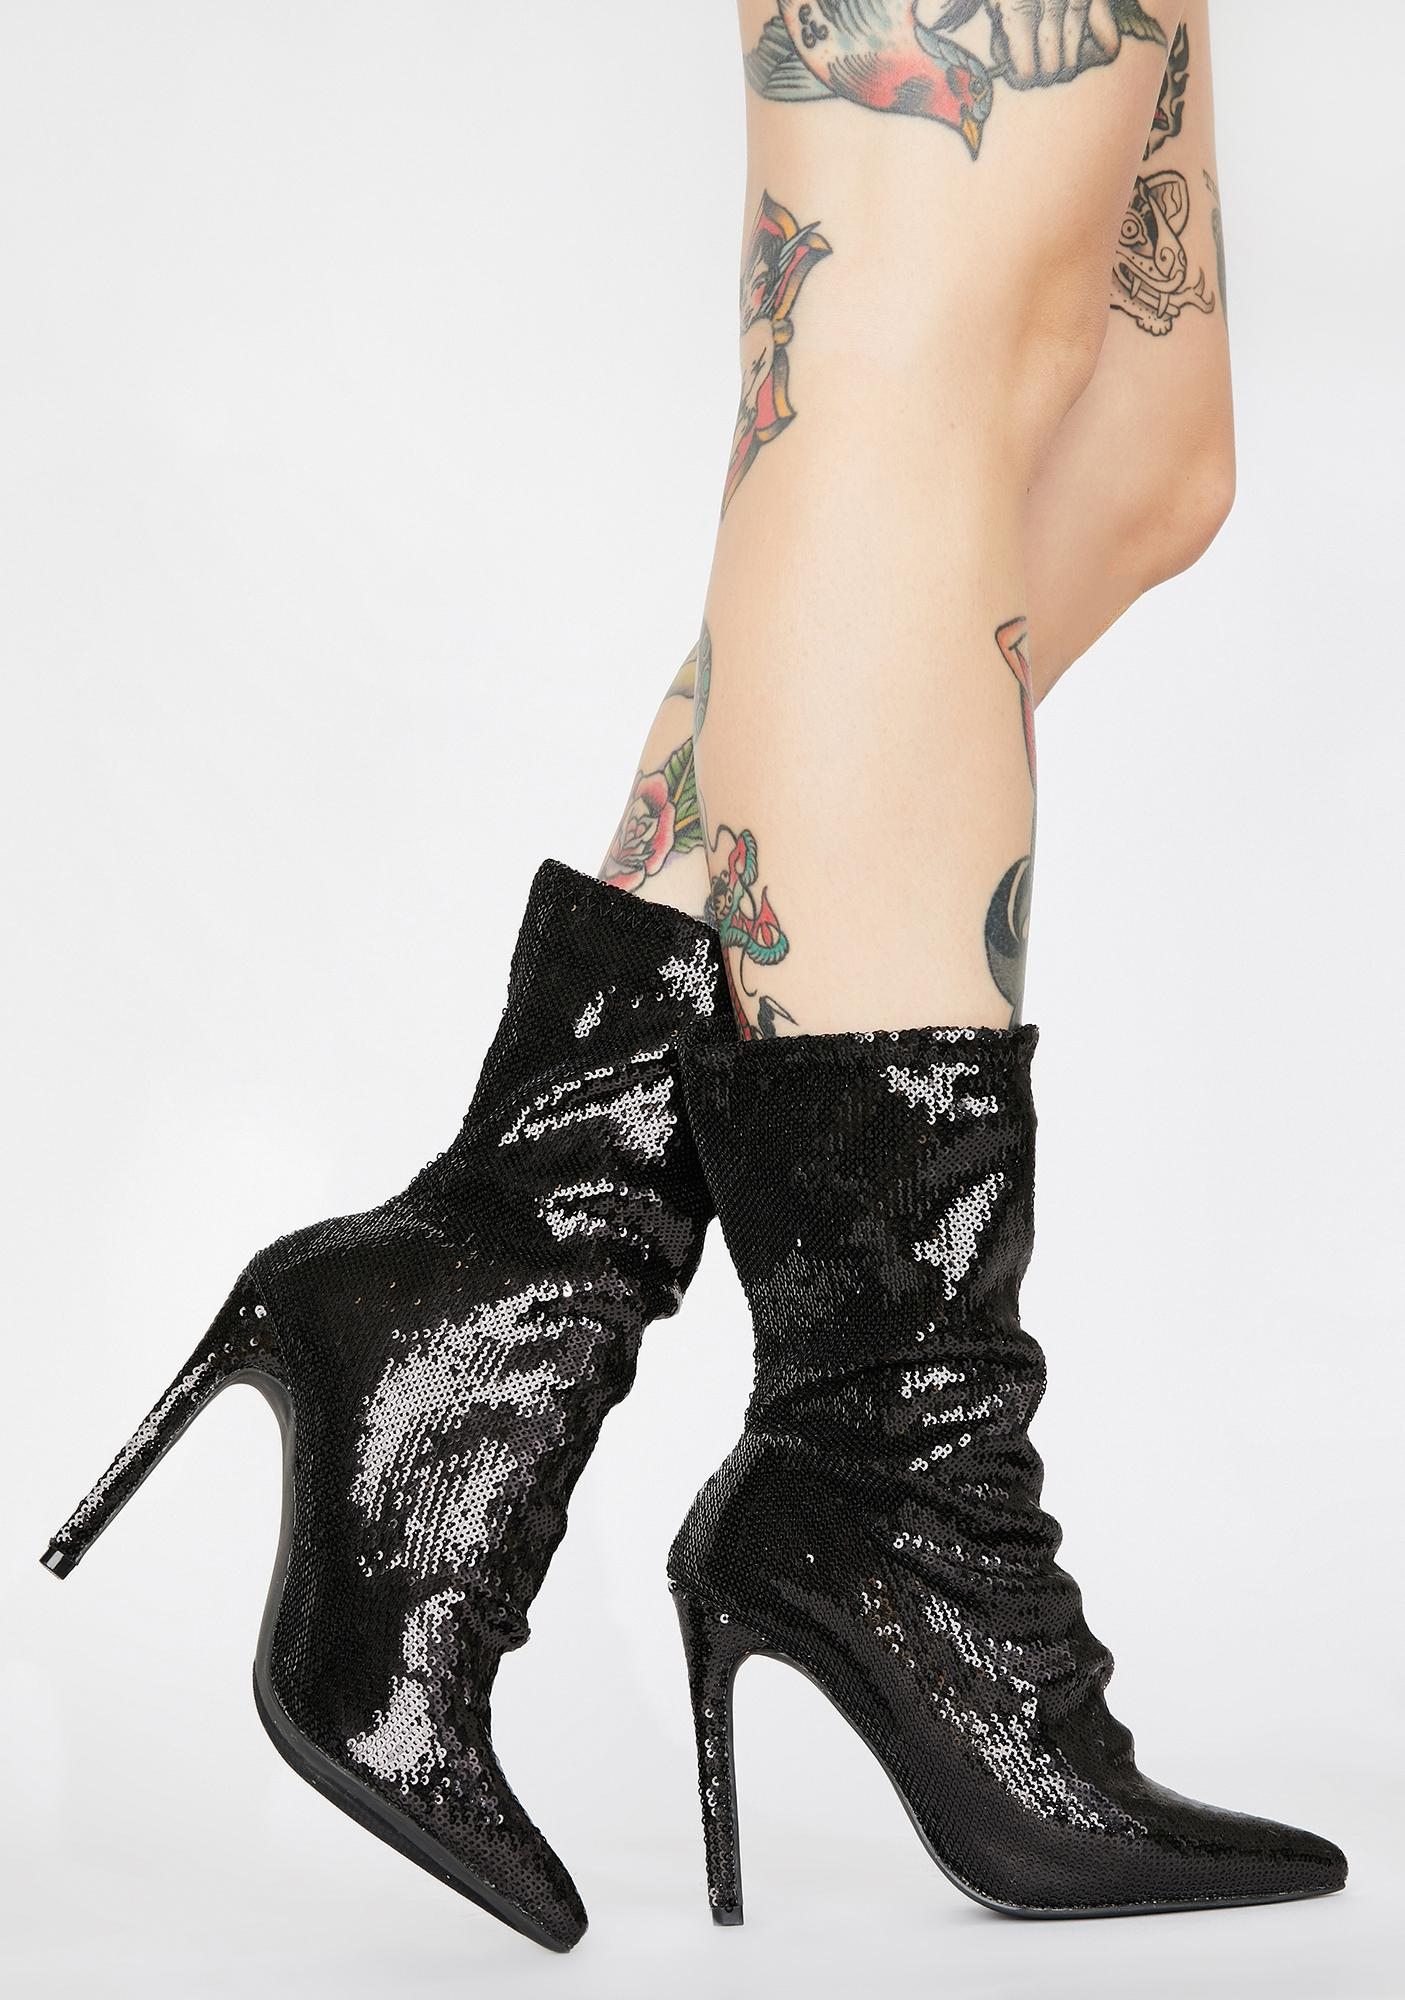 Midnight Solo Debut Ankle Booties